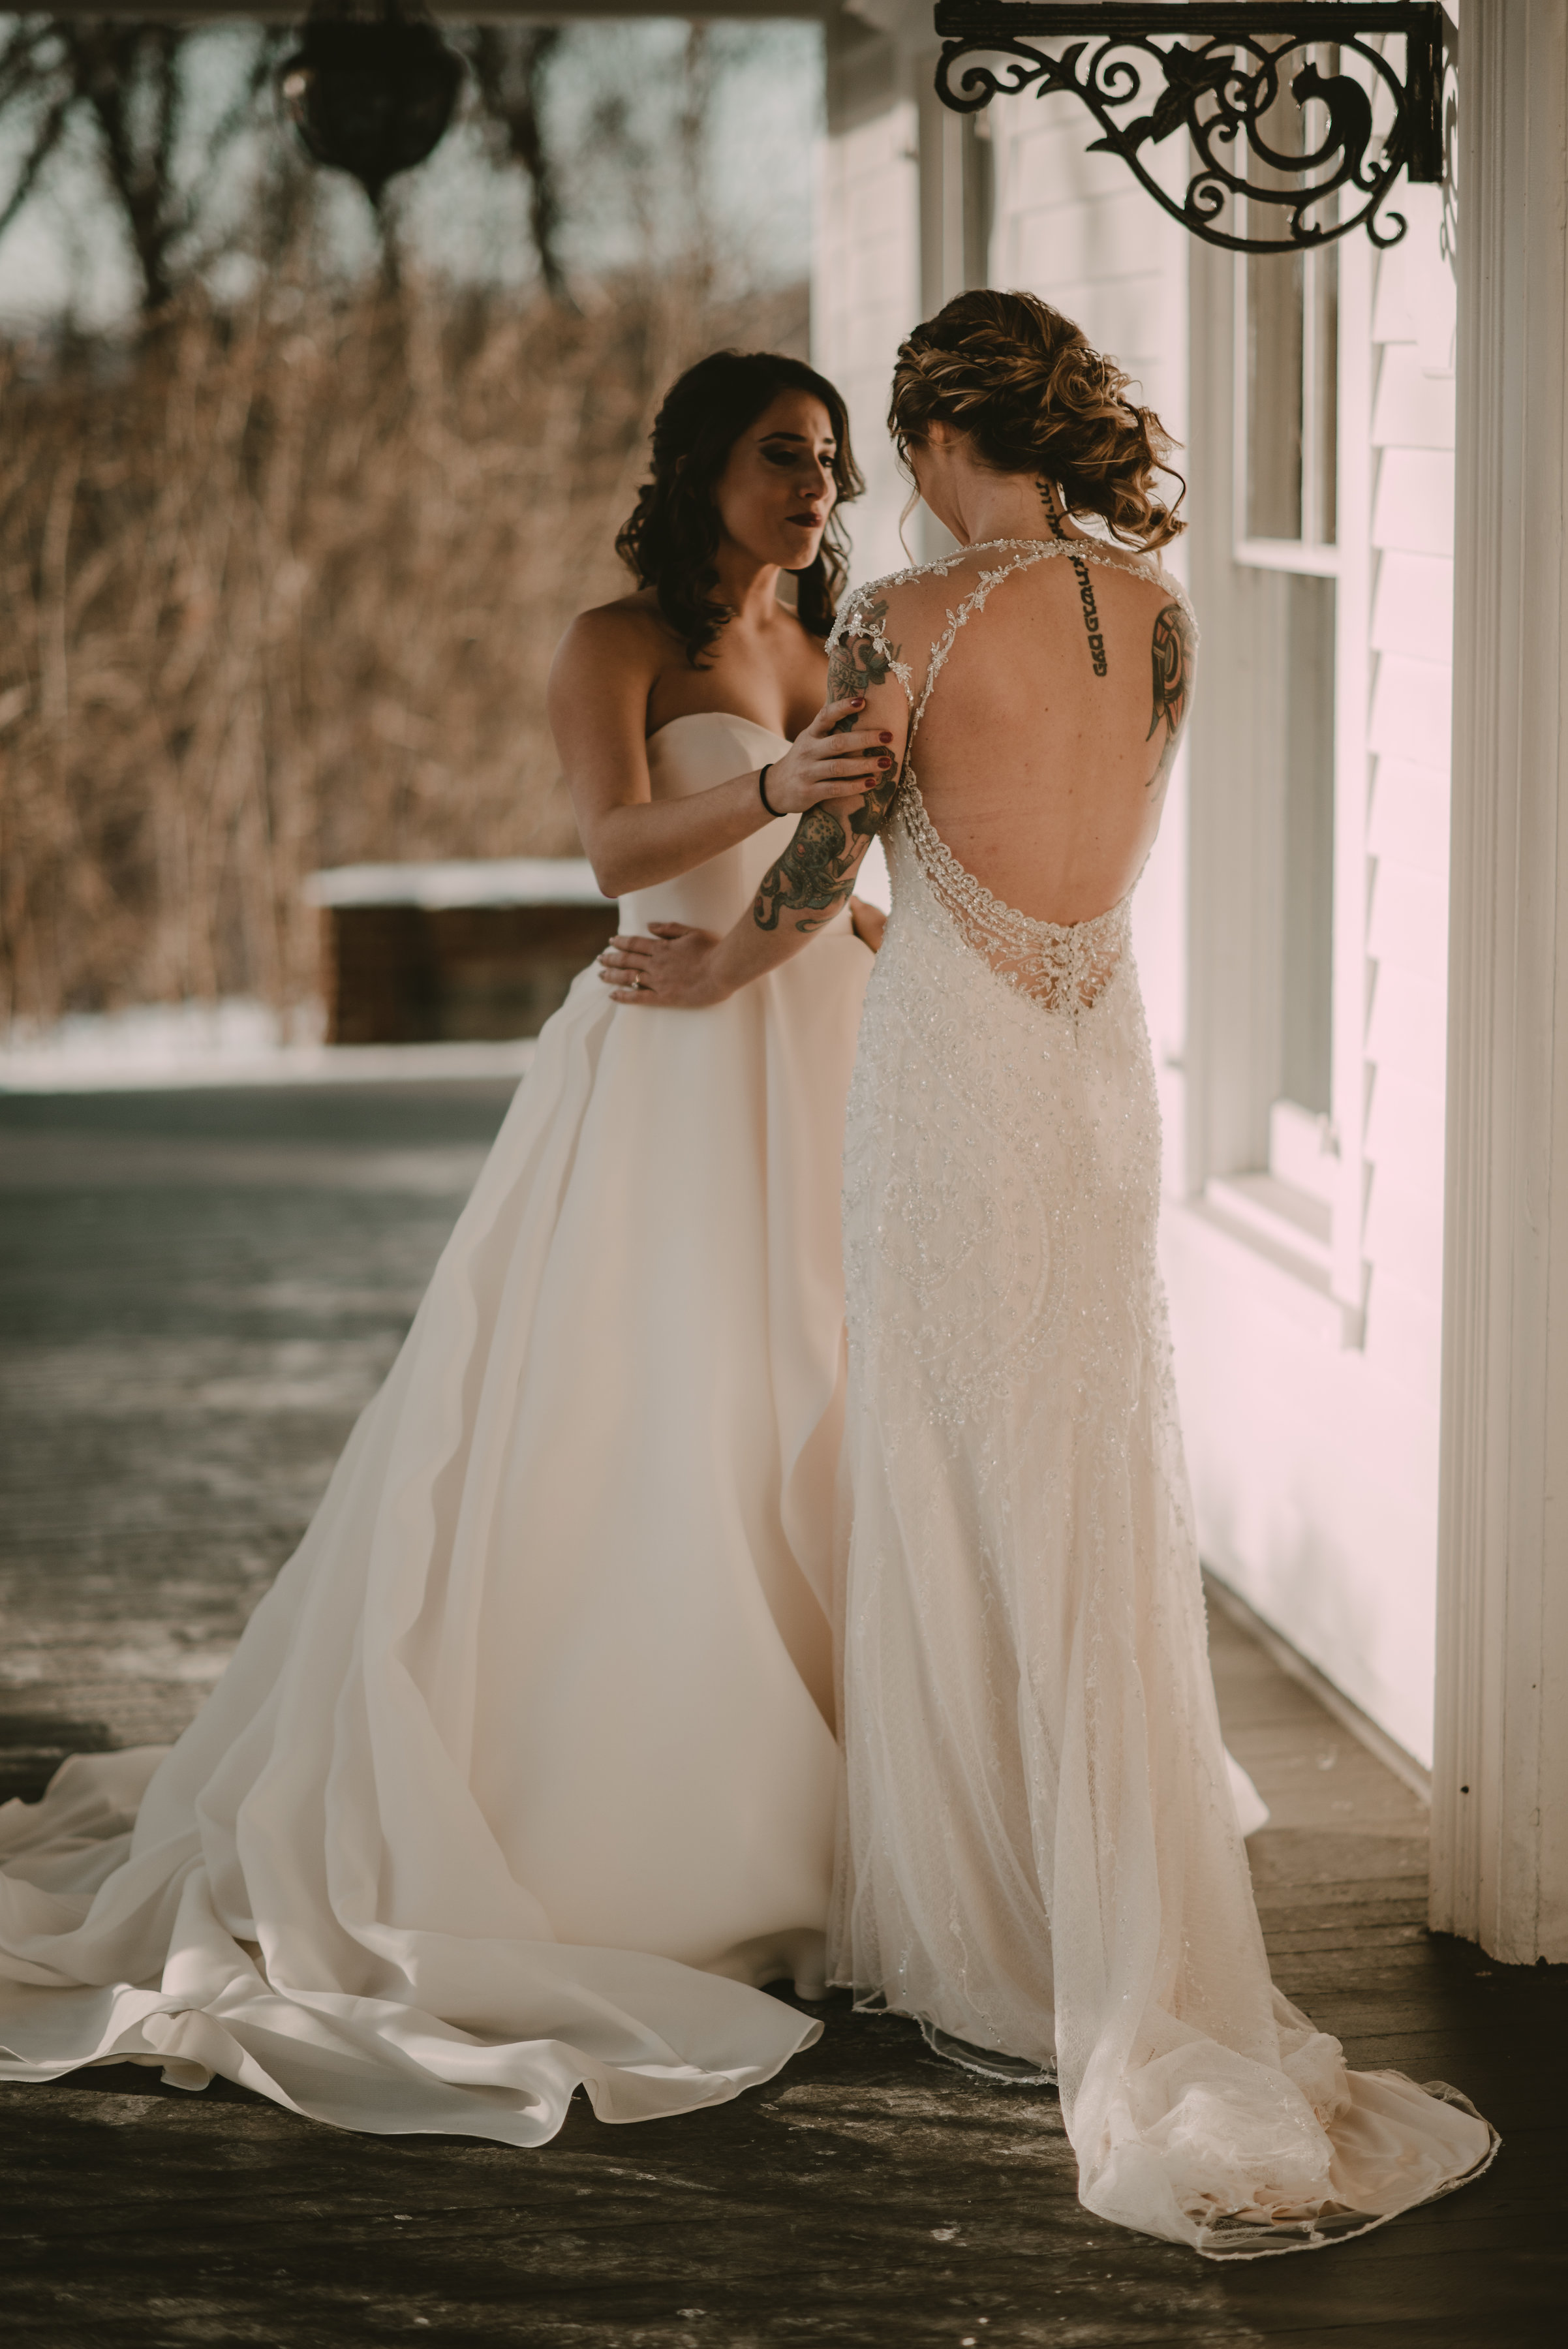 Snowy Upstate New York Wedding - First Look